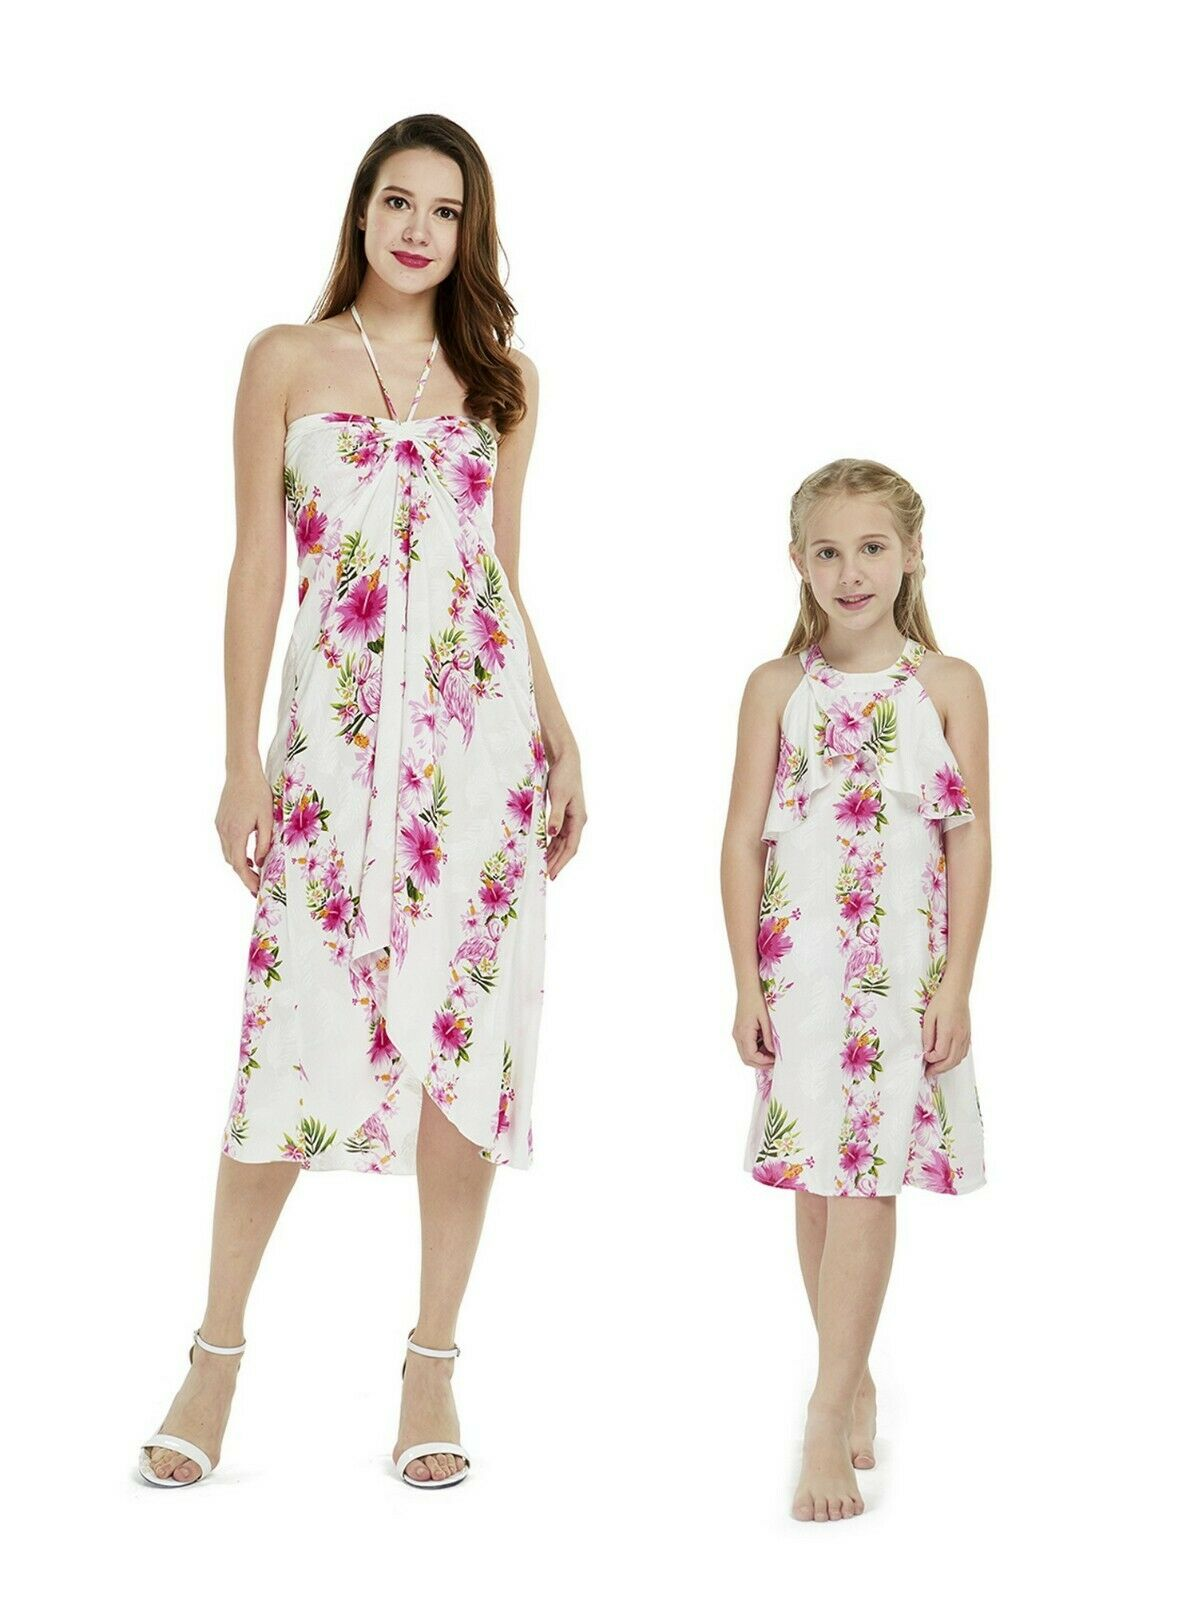 Hawaii Hangover Mother Daughter Matching Luau Party Dress In Pink Hibiscus Vine